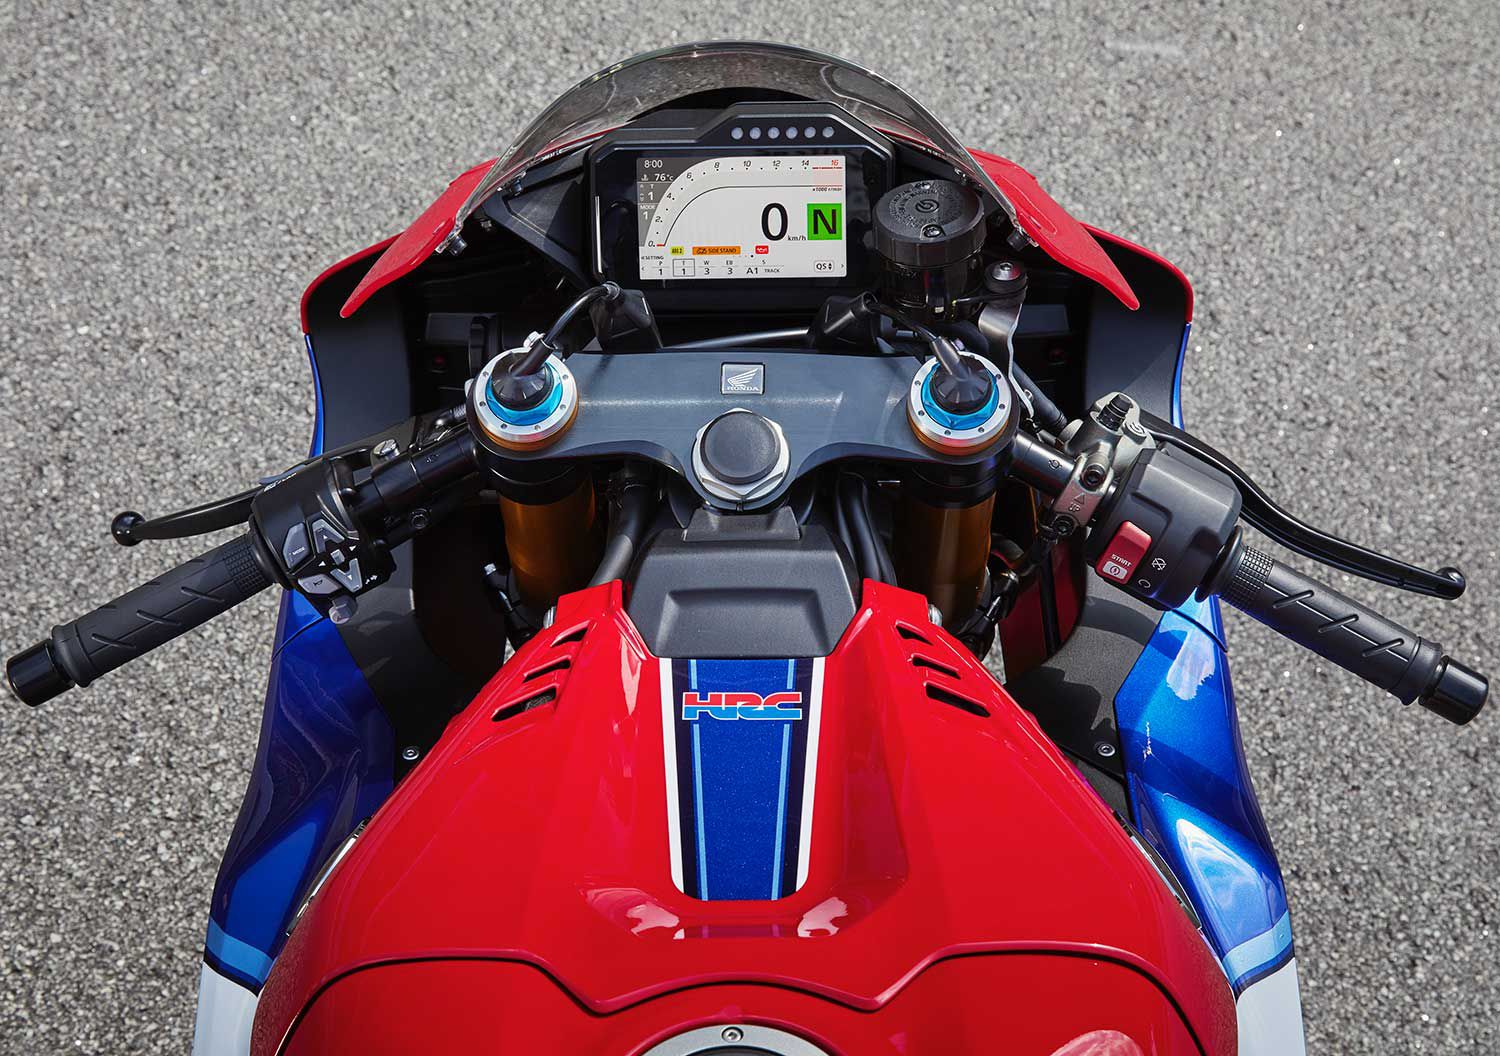 The ergonomics on the 2021 CBR are noticeably more aggressive. Specifically, the clip-ons are set lower and at a wider angle, and the front profile of the motorcycle has lowered for more effective aerodynamics.